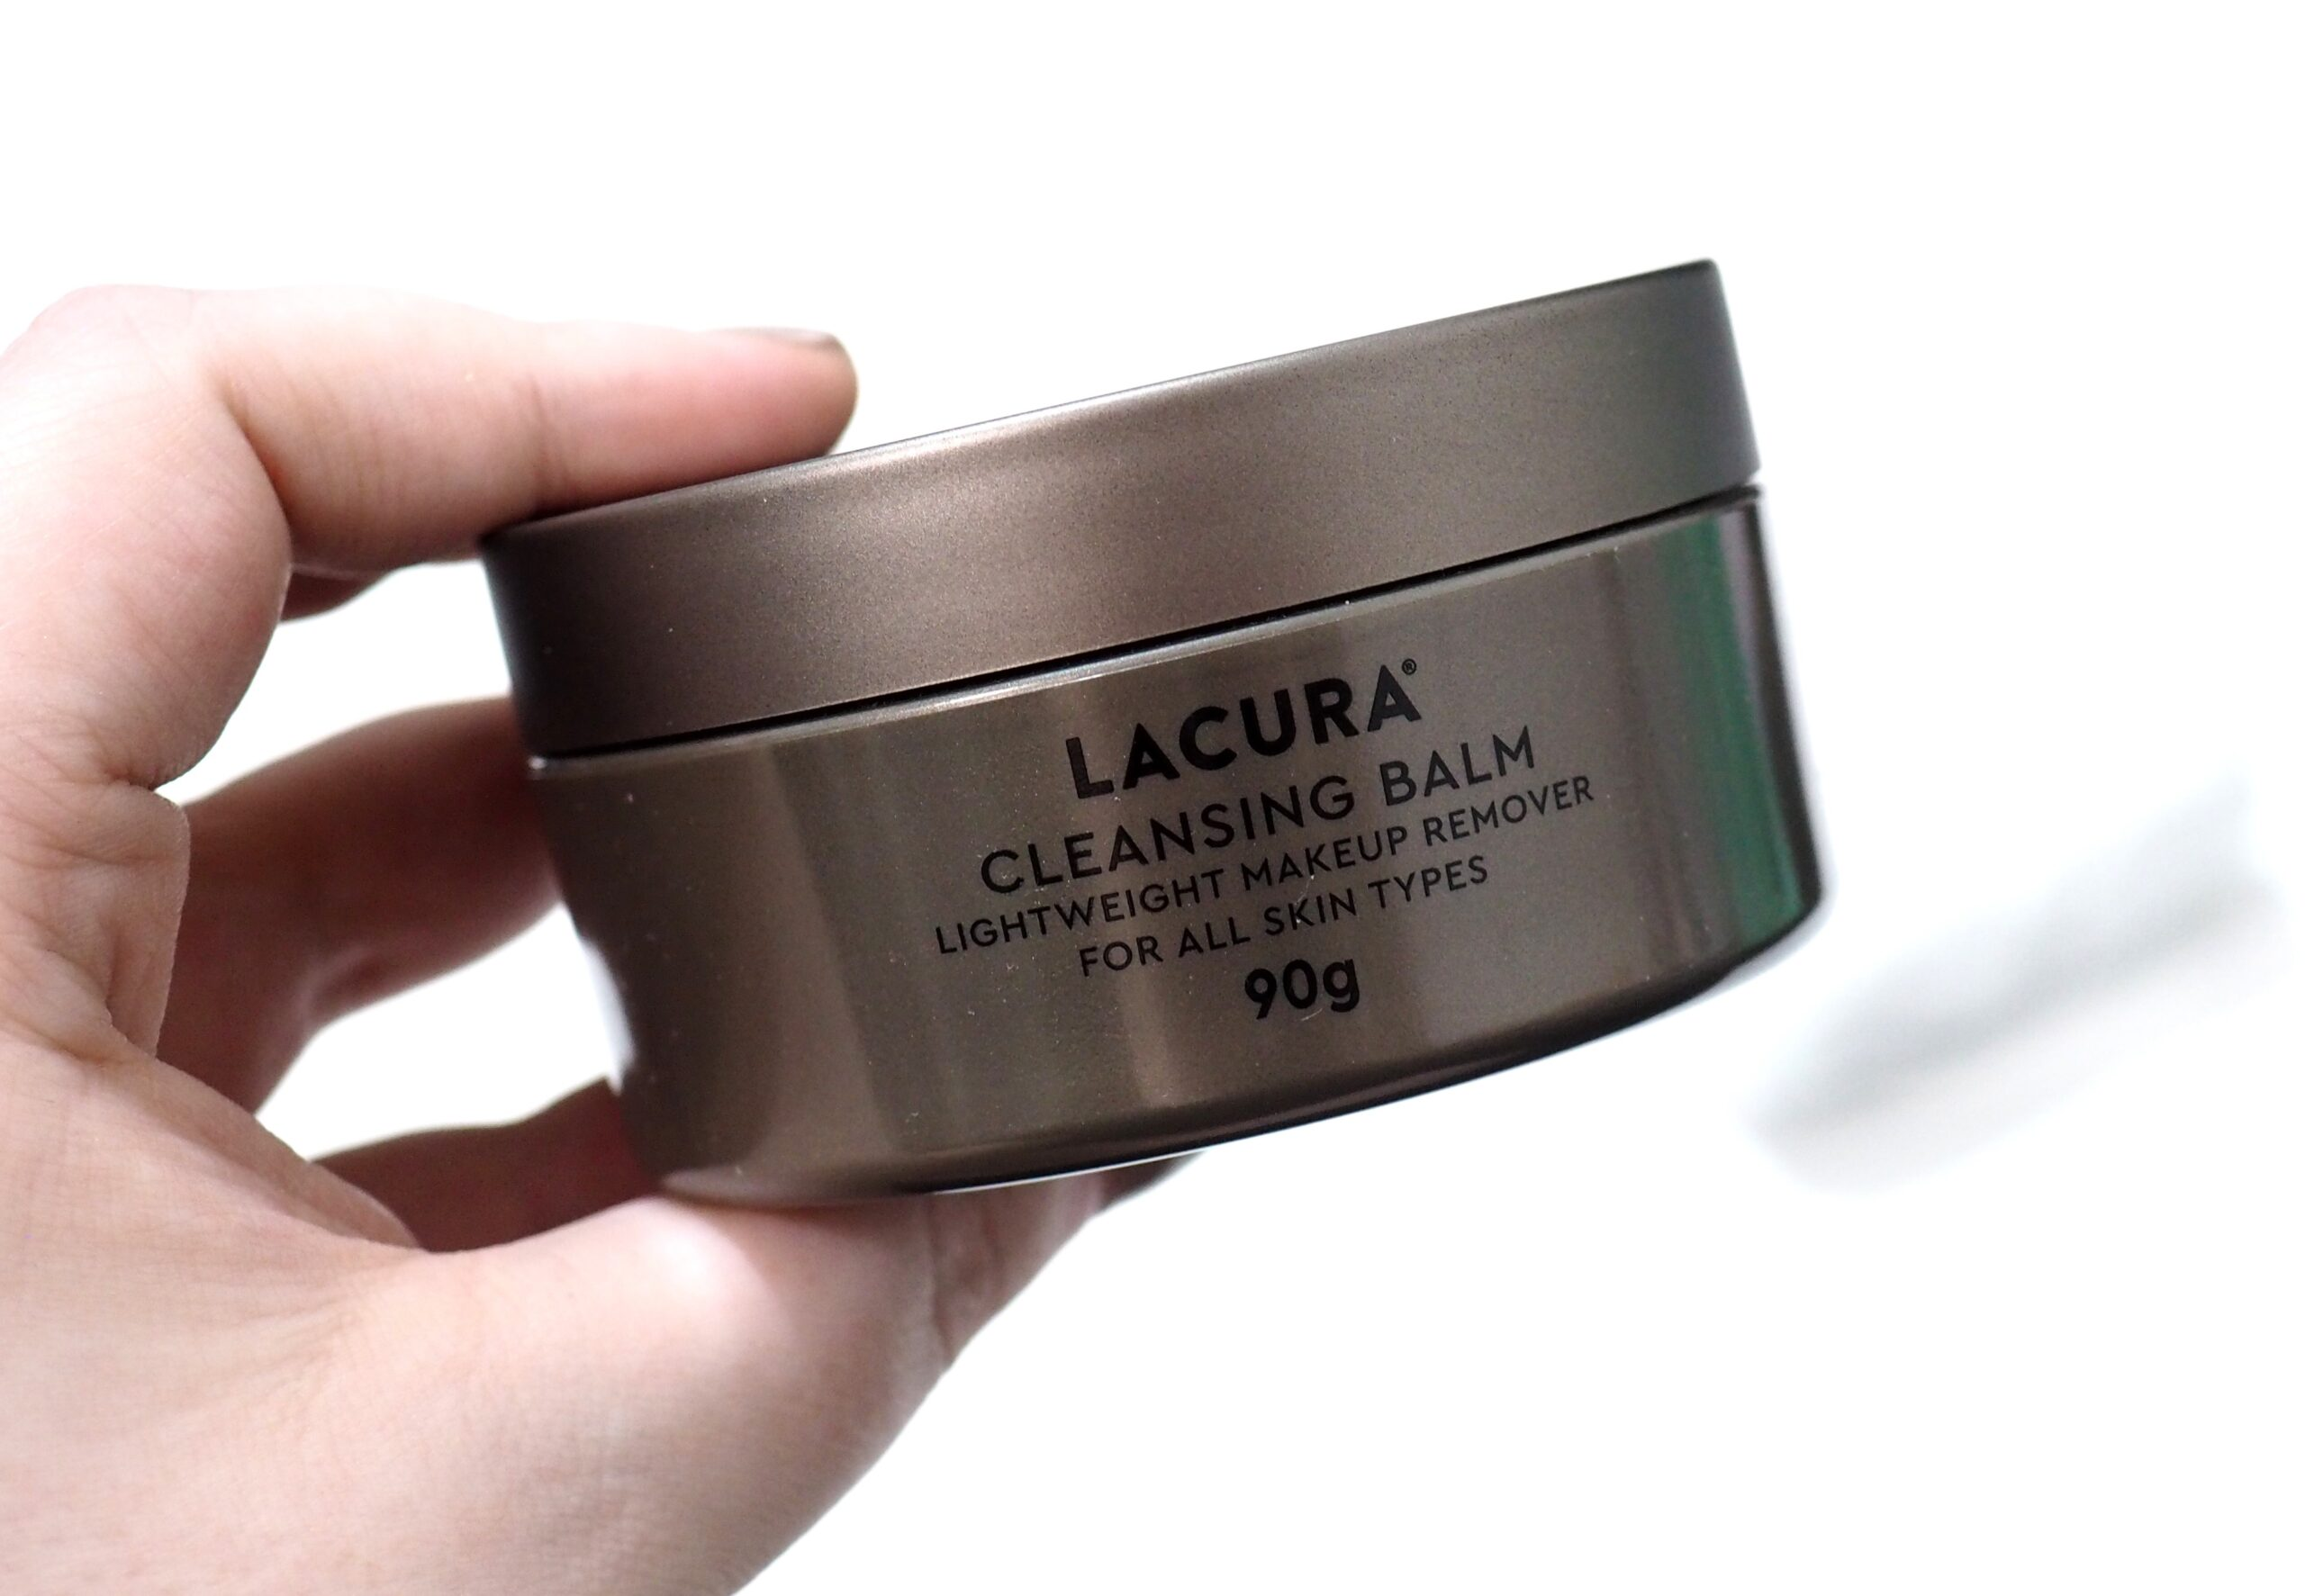 Aldi Lacura Cleansing Balm Review